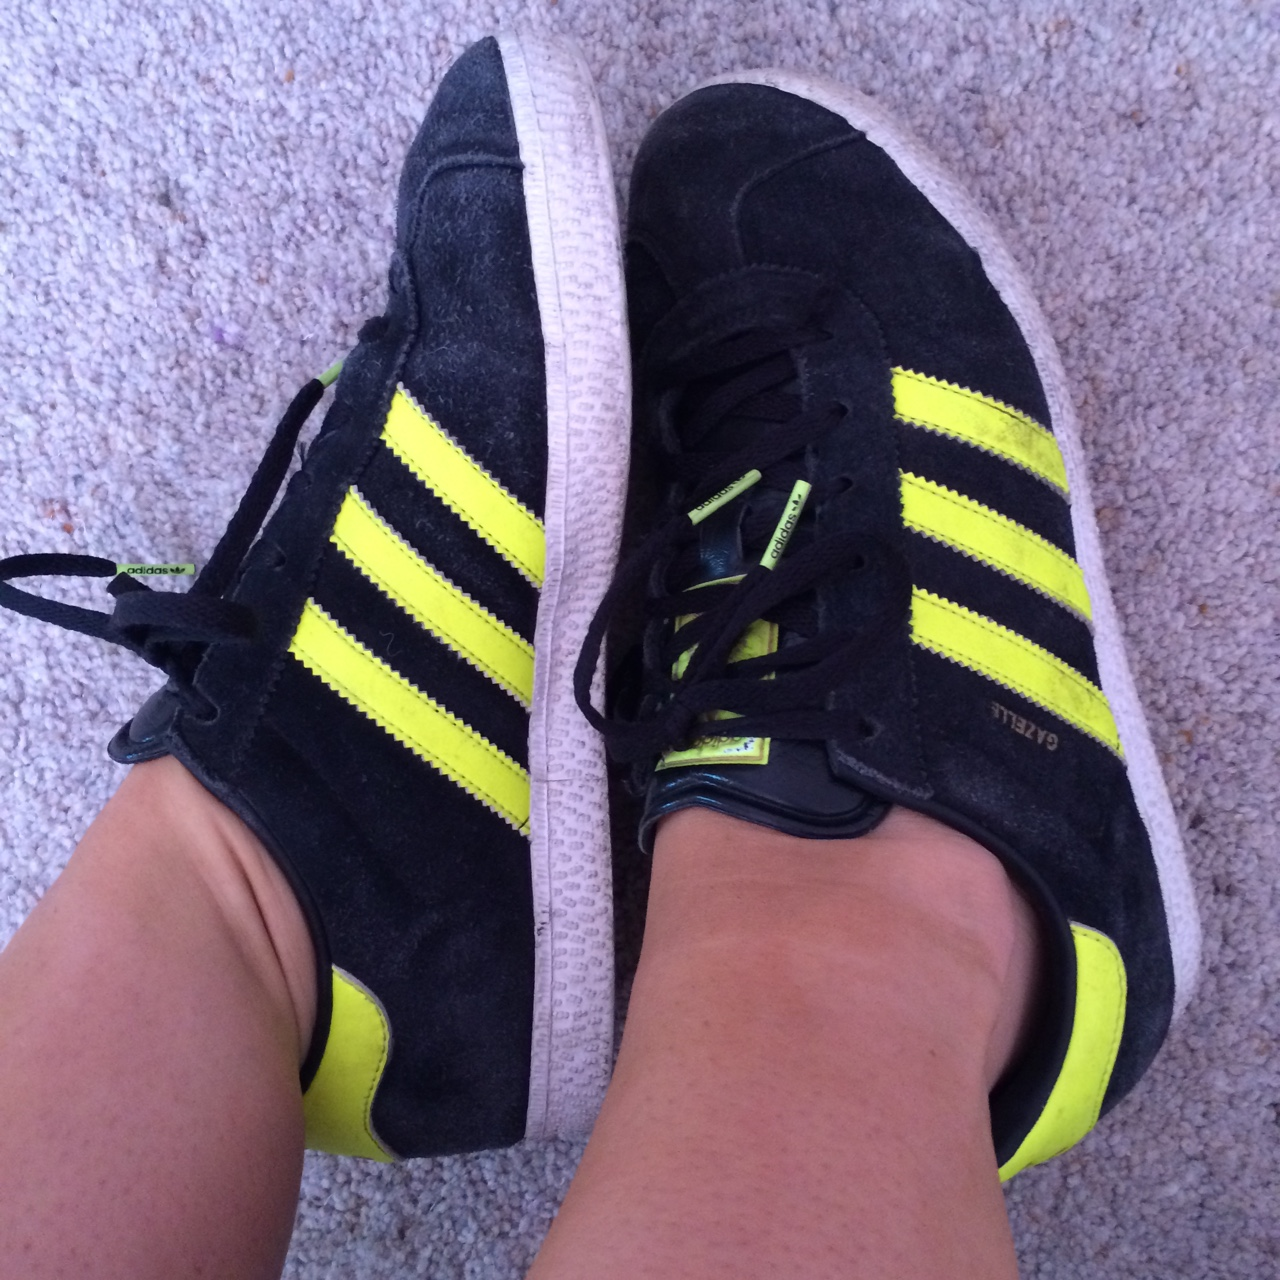 ADIDAS gazelle trainers - suede and